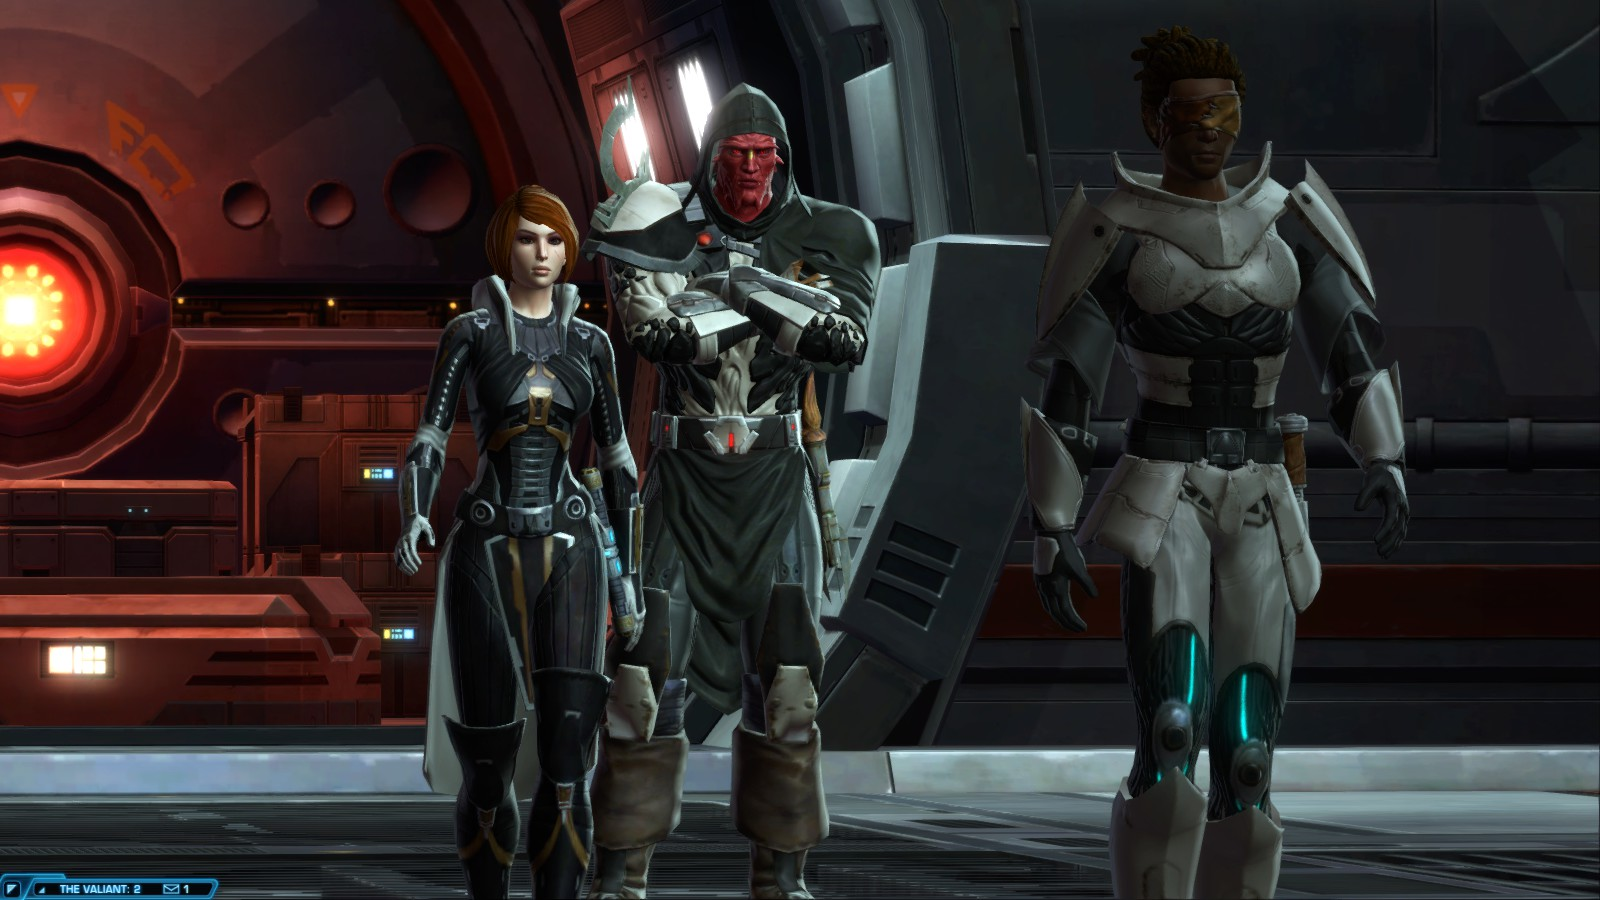 Why most of the people wishing to play a swtor game?